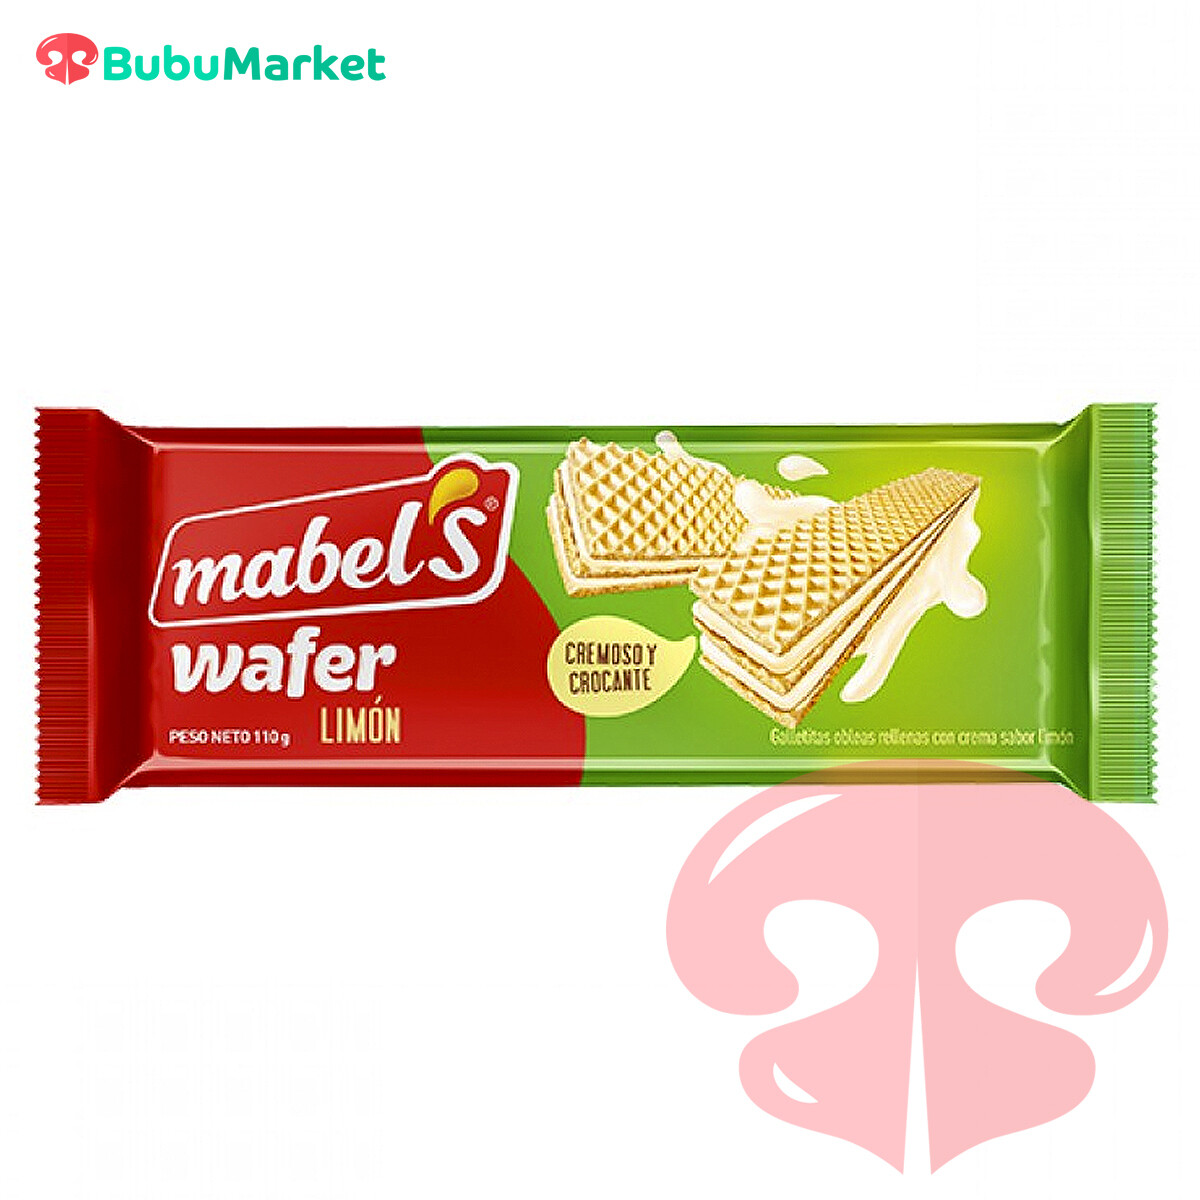 GALLETA WAFER MABEL LIMON  110 GR.